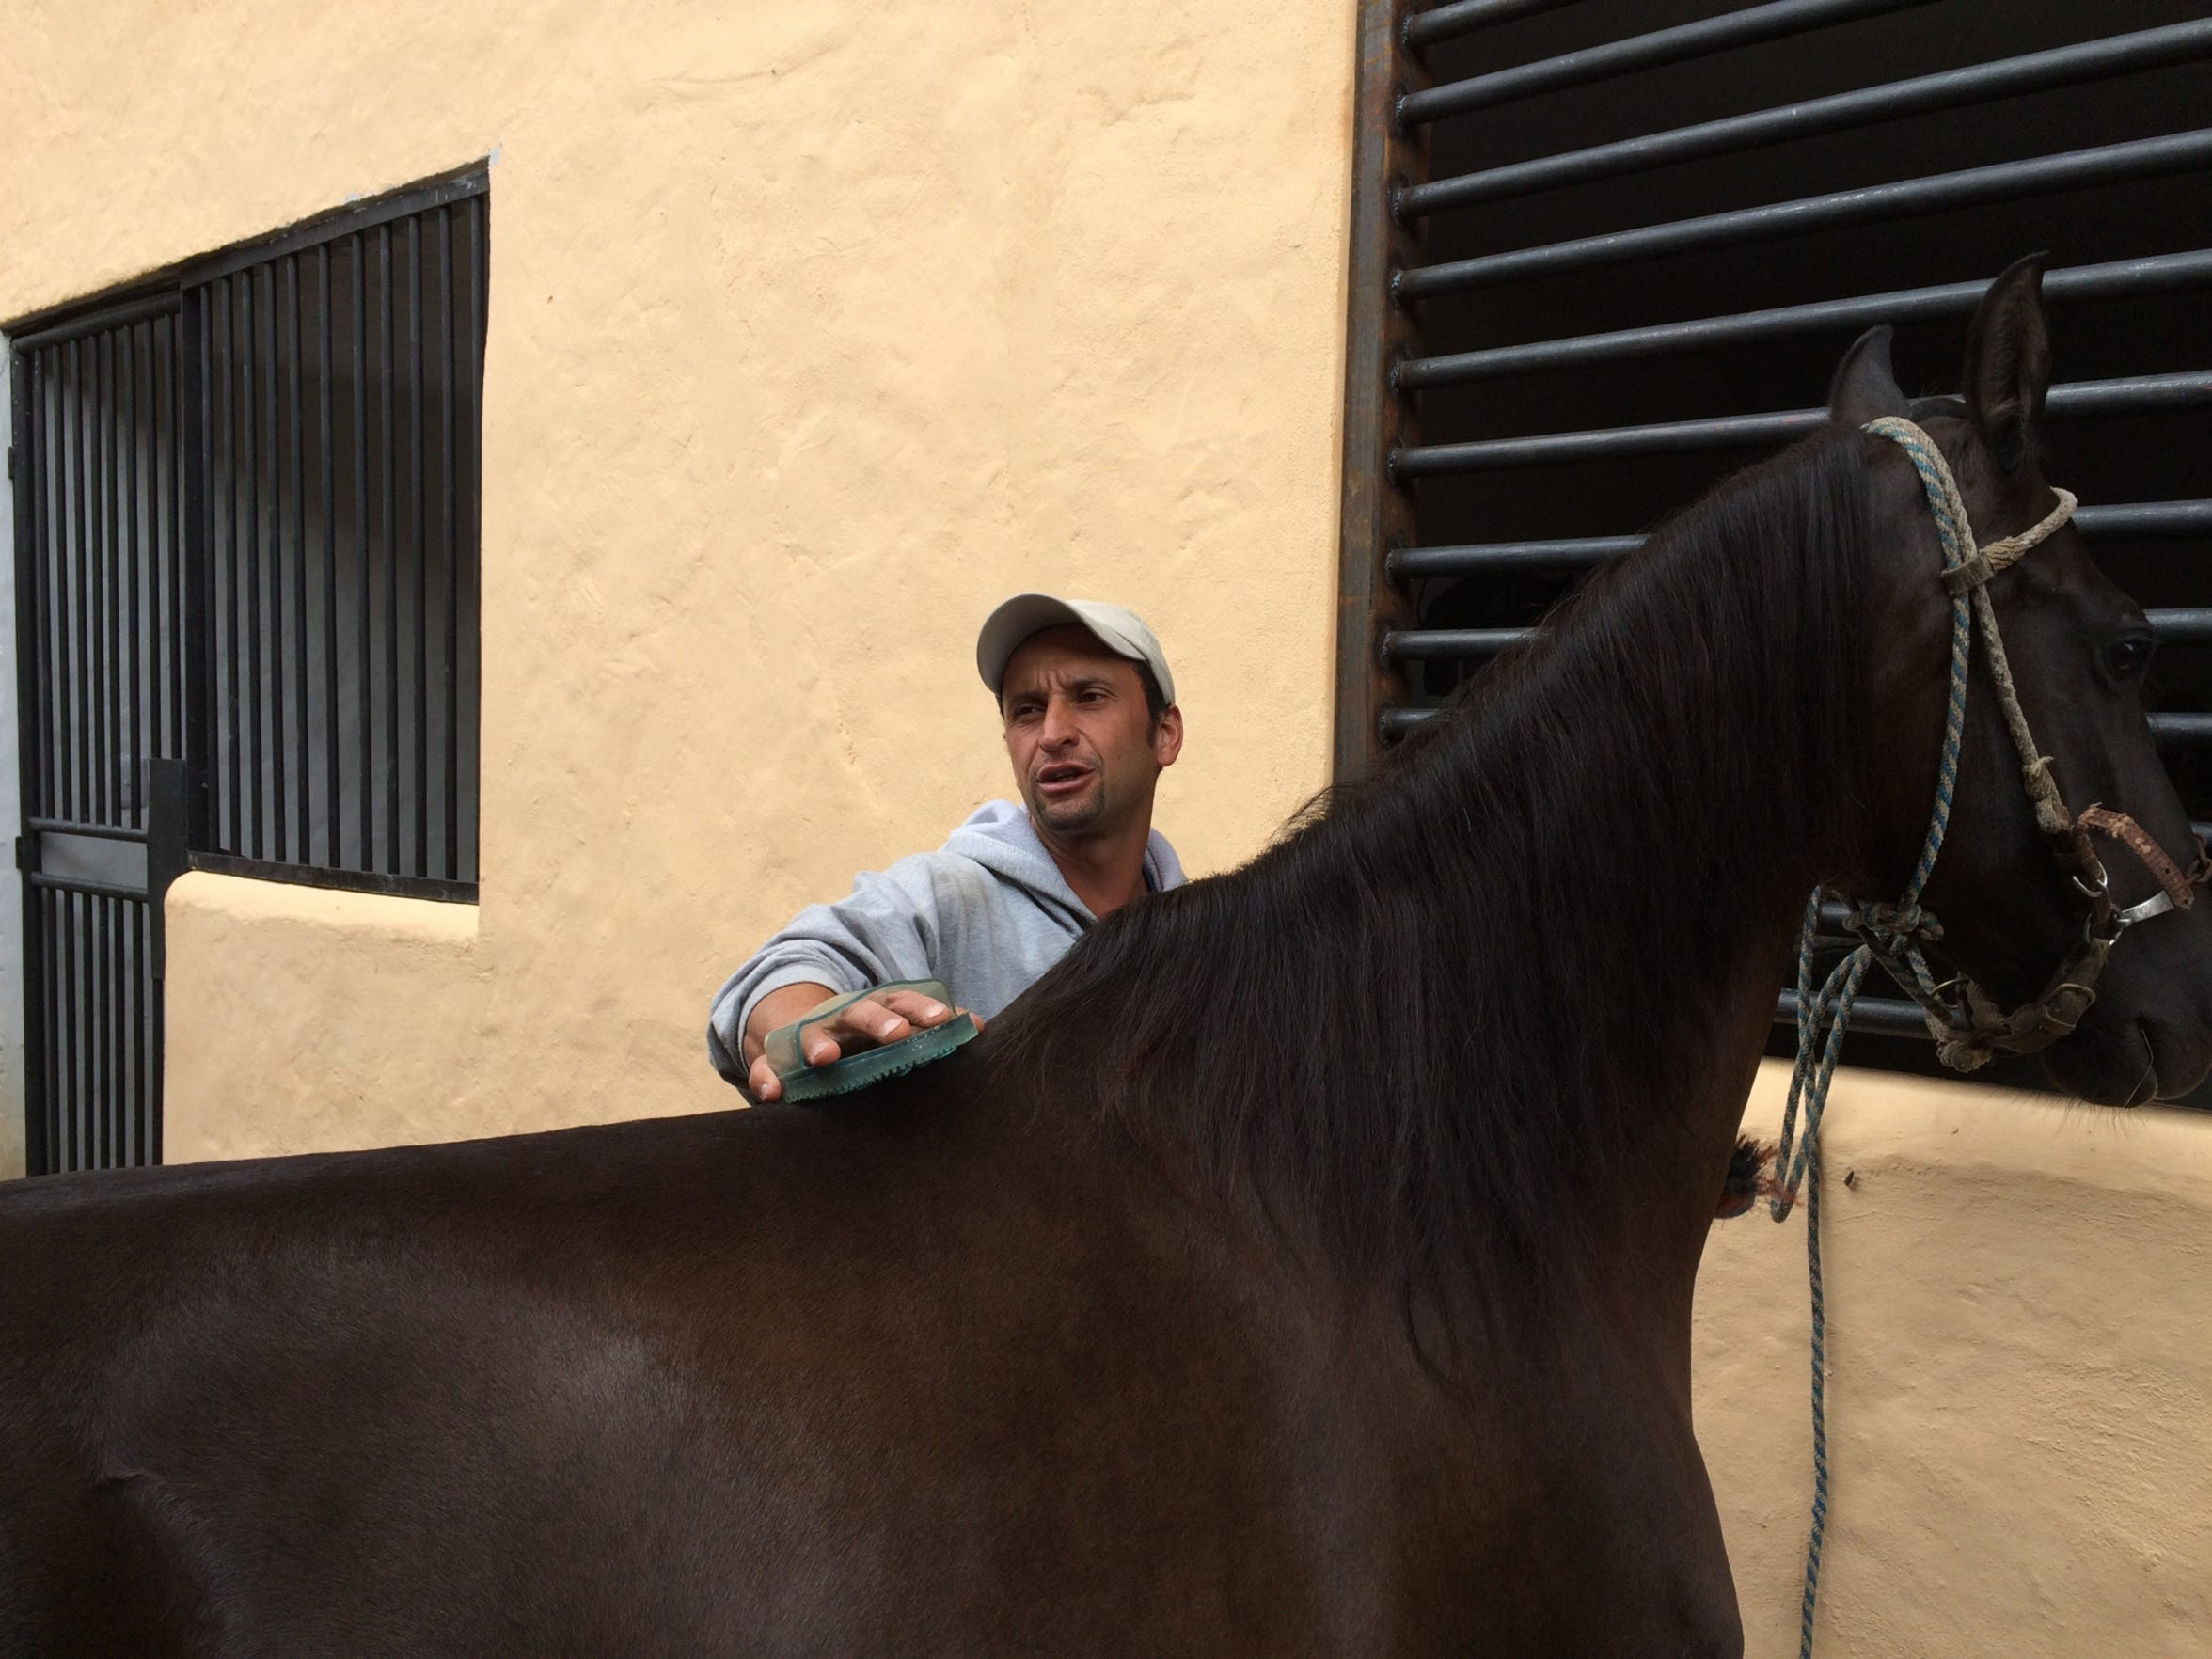 Hugo is a horse caretaker who is participating in the